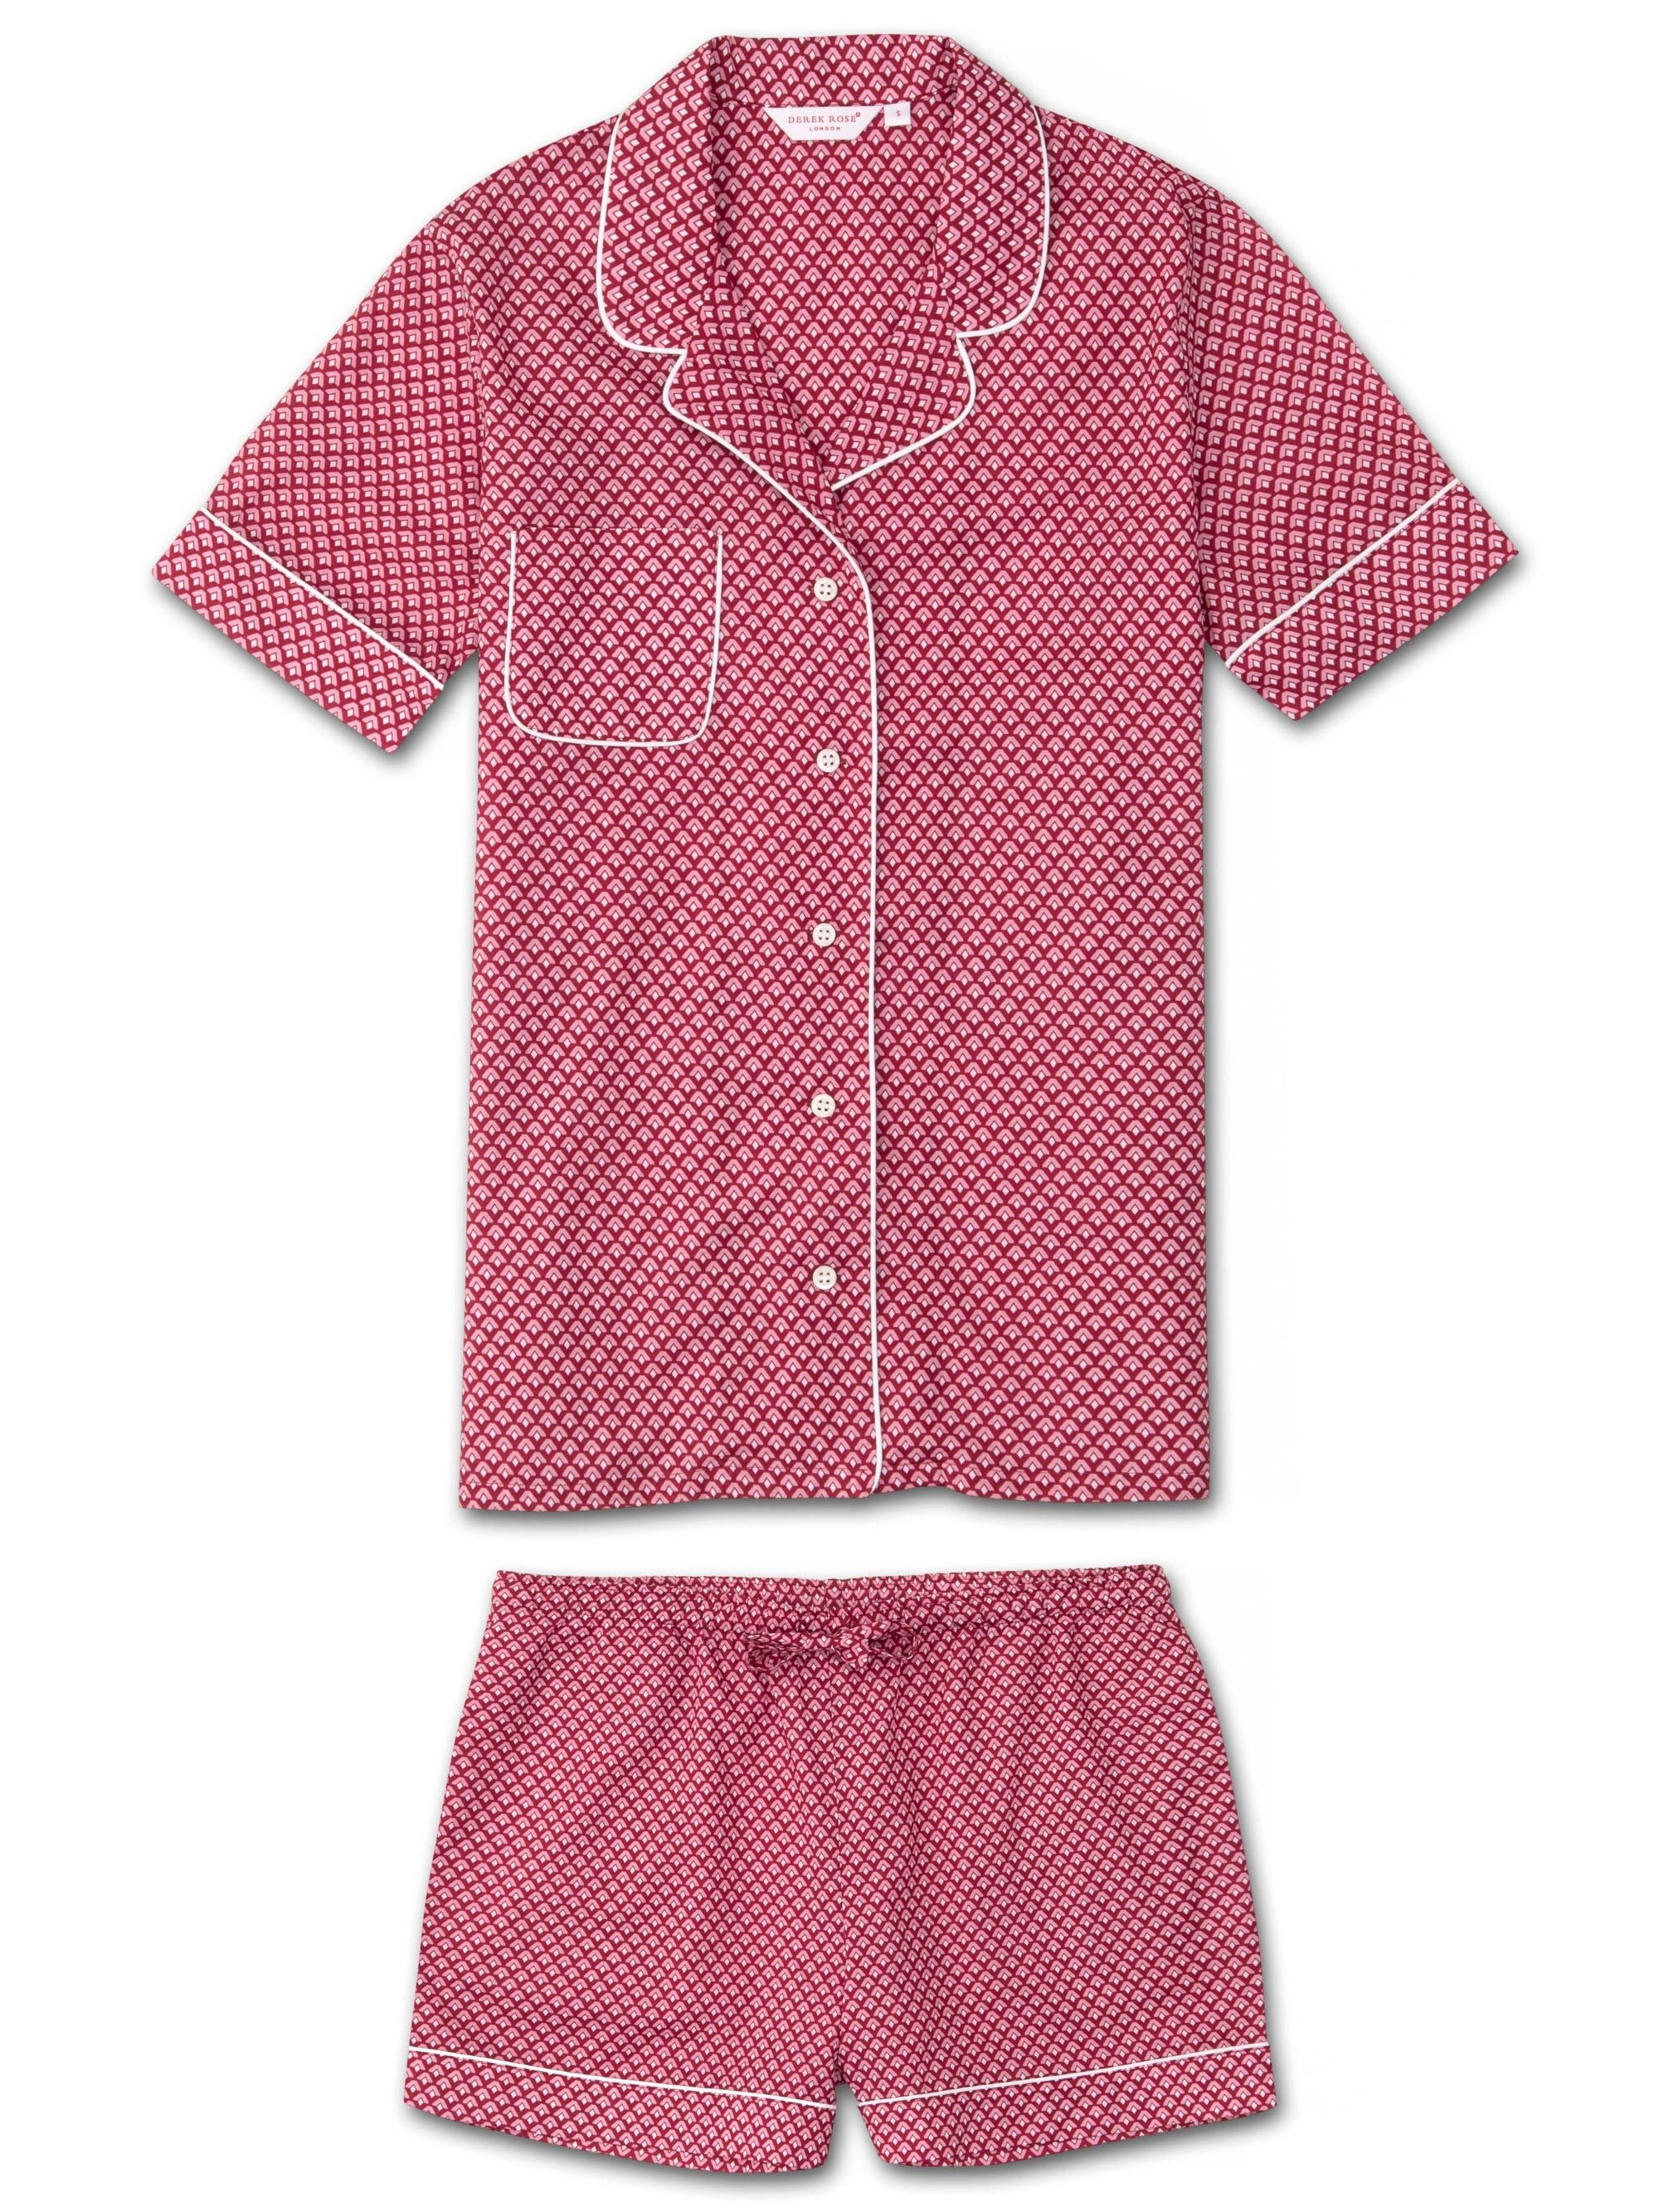 Women's Shortie Pyjamas Ledbury 31 Cotton Batiste Pink